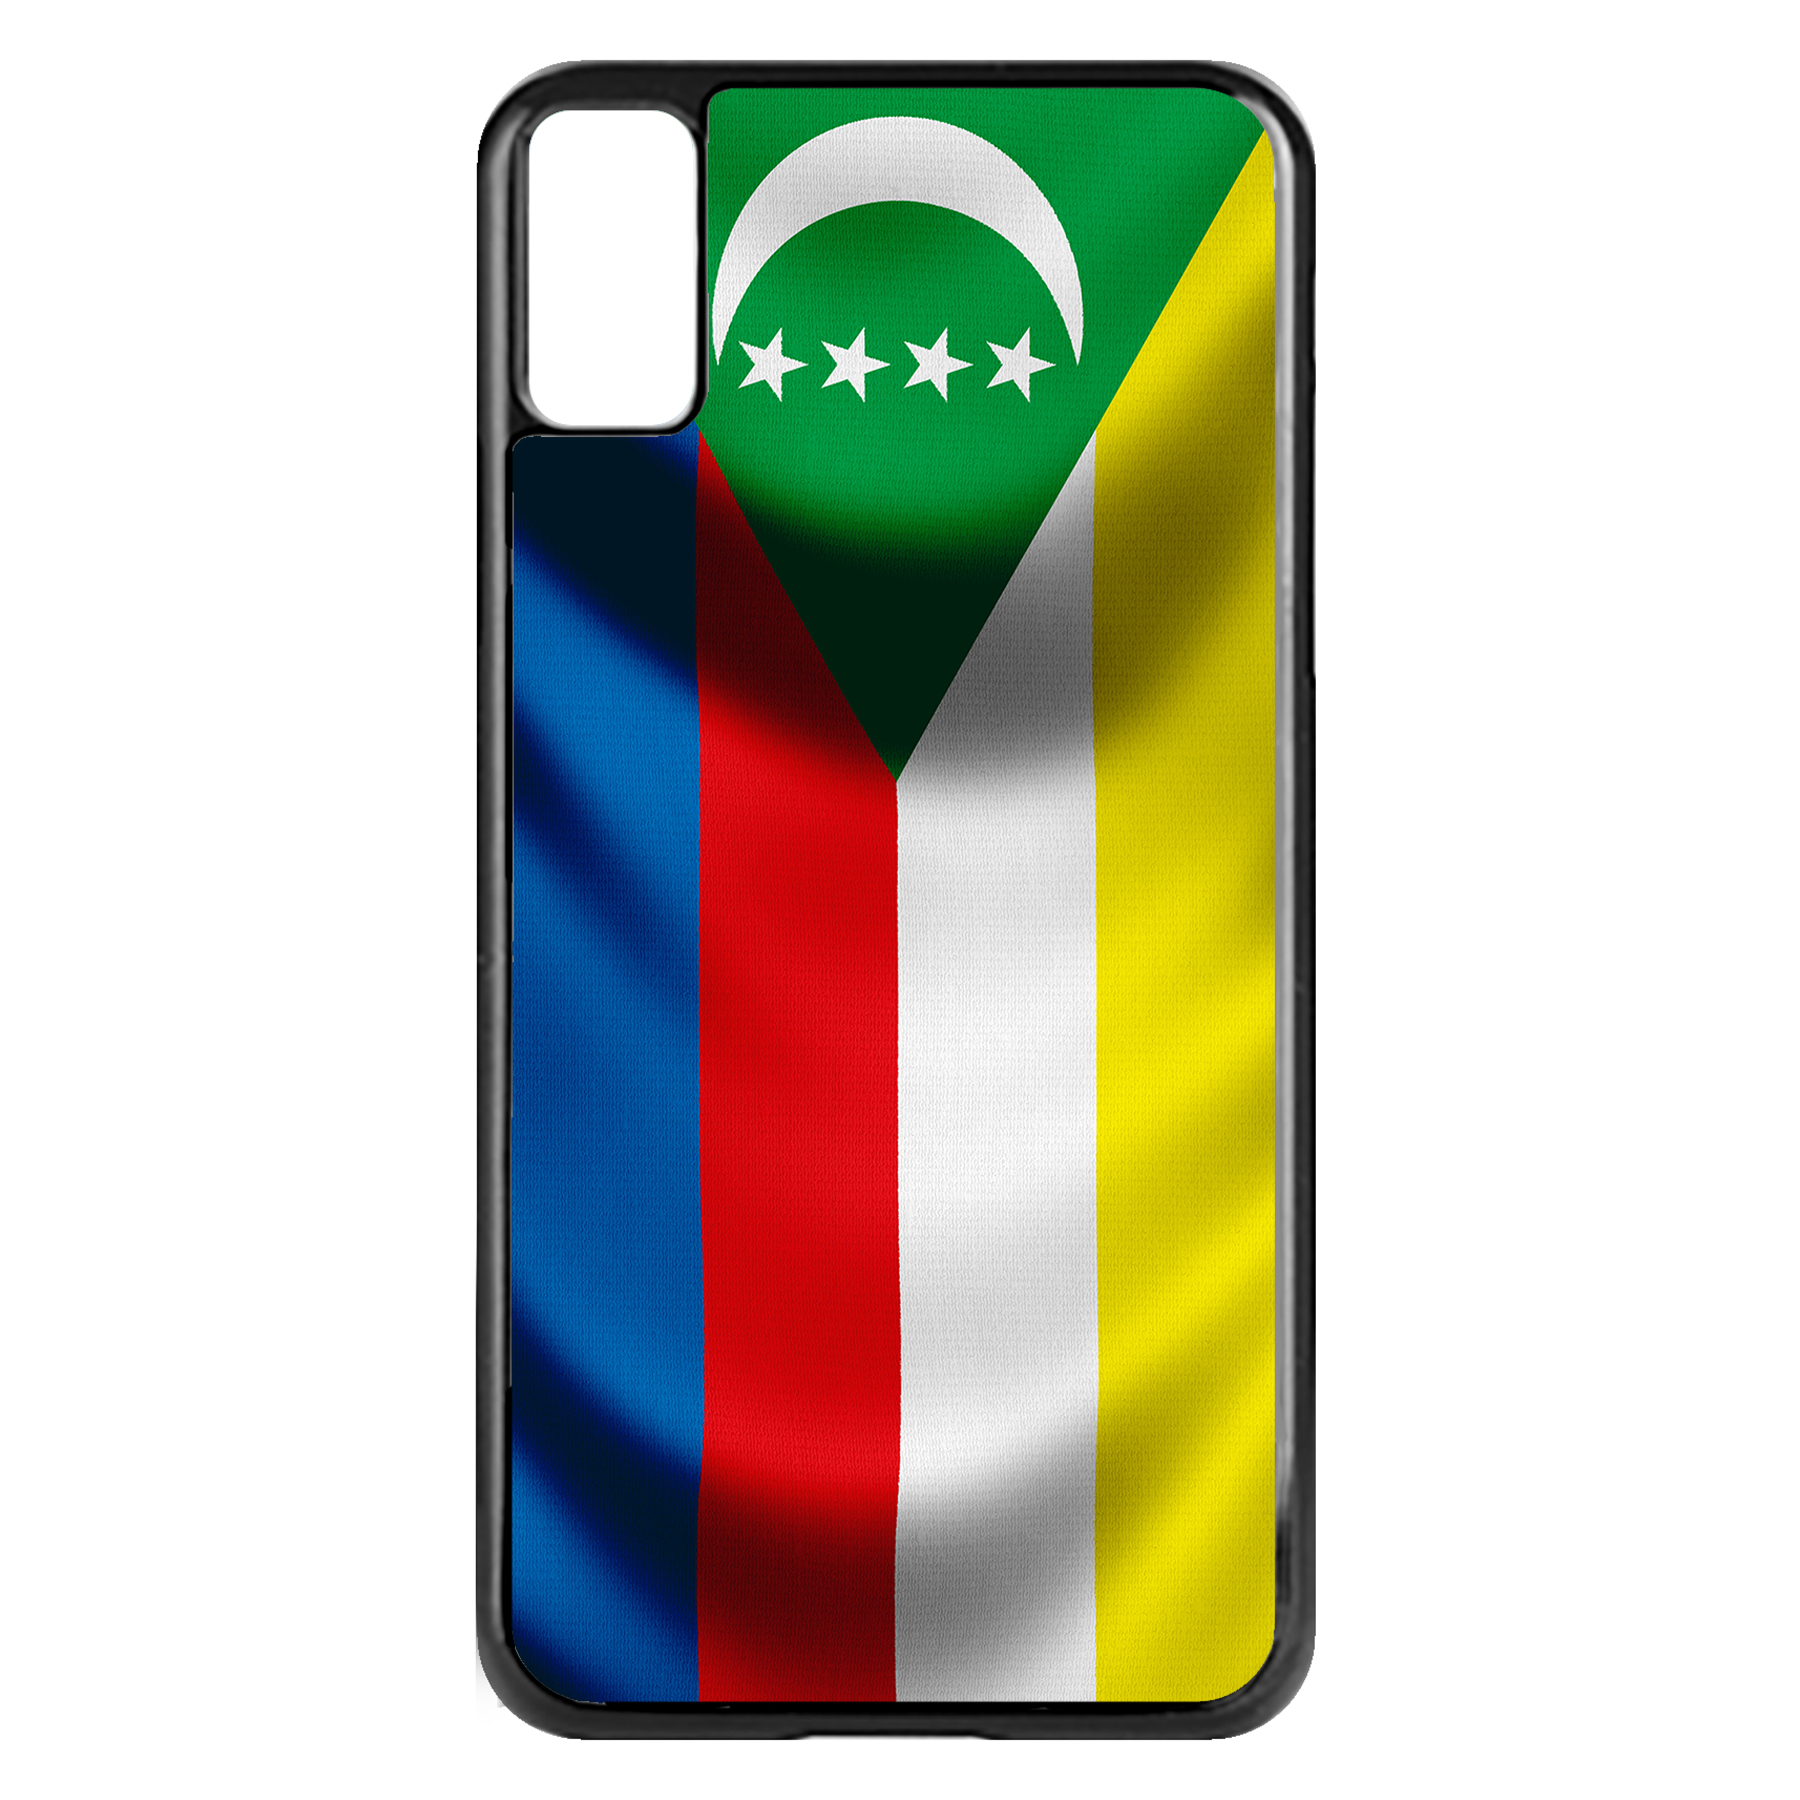 Apple-iPhone-Case-with-Flag-of-Comoros-Comorian-Many-Design-Options thumbnail 27